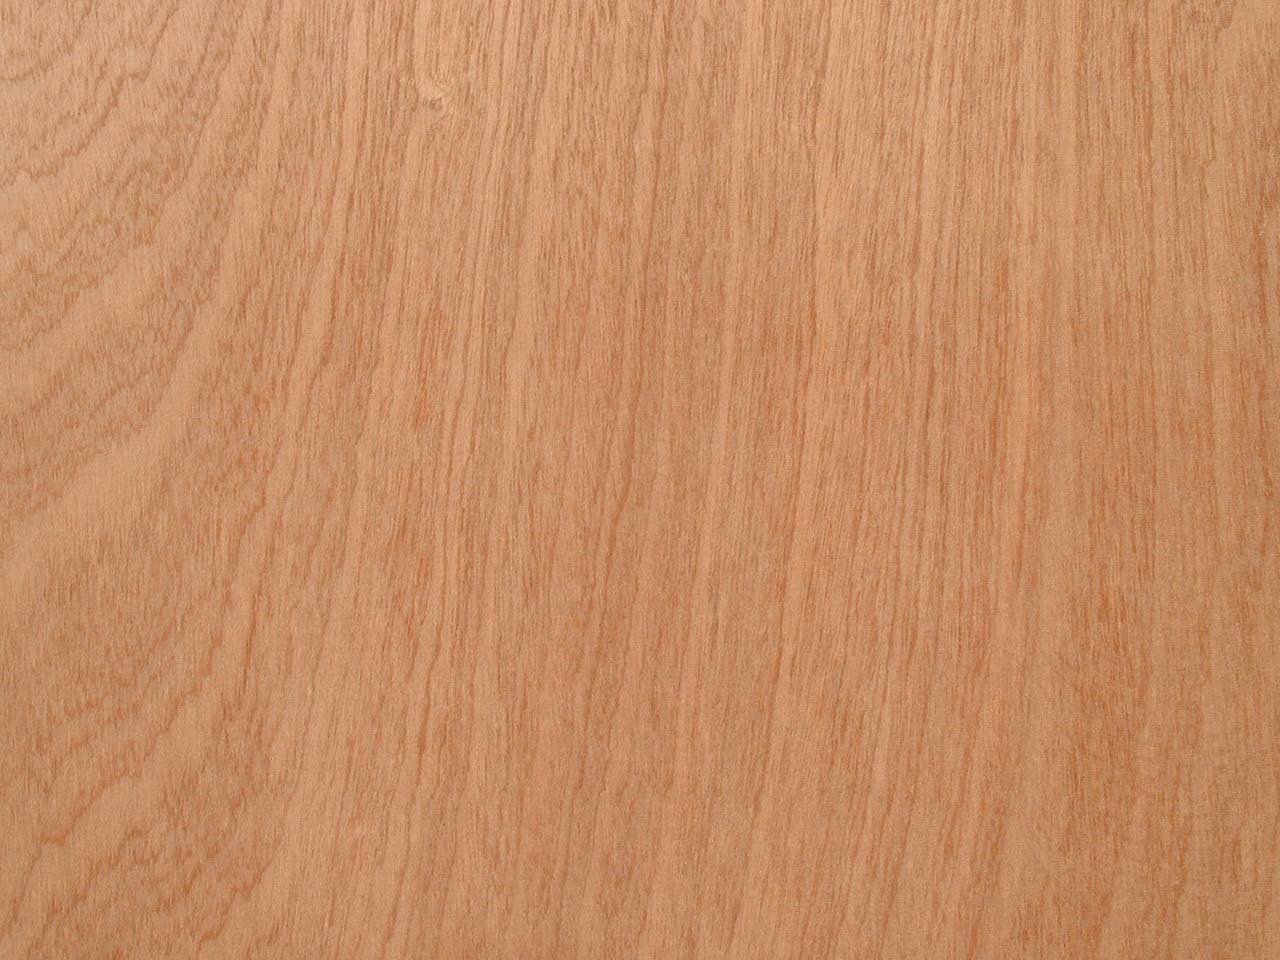 Boulter Plywood